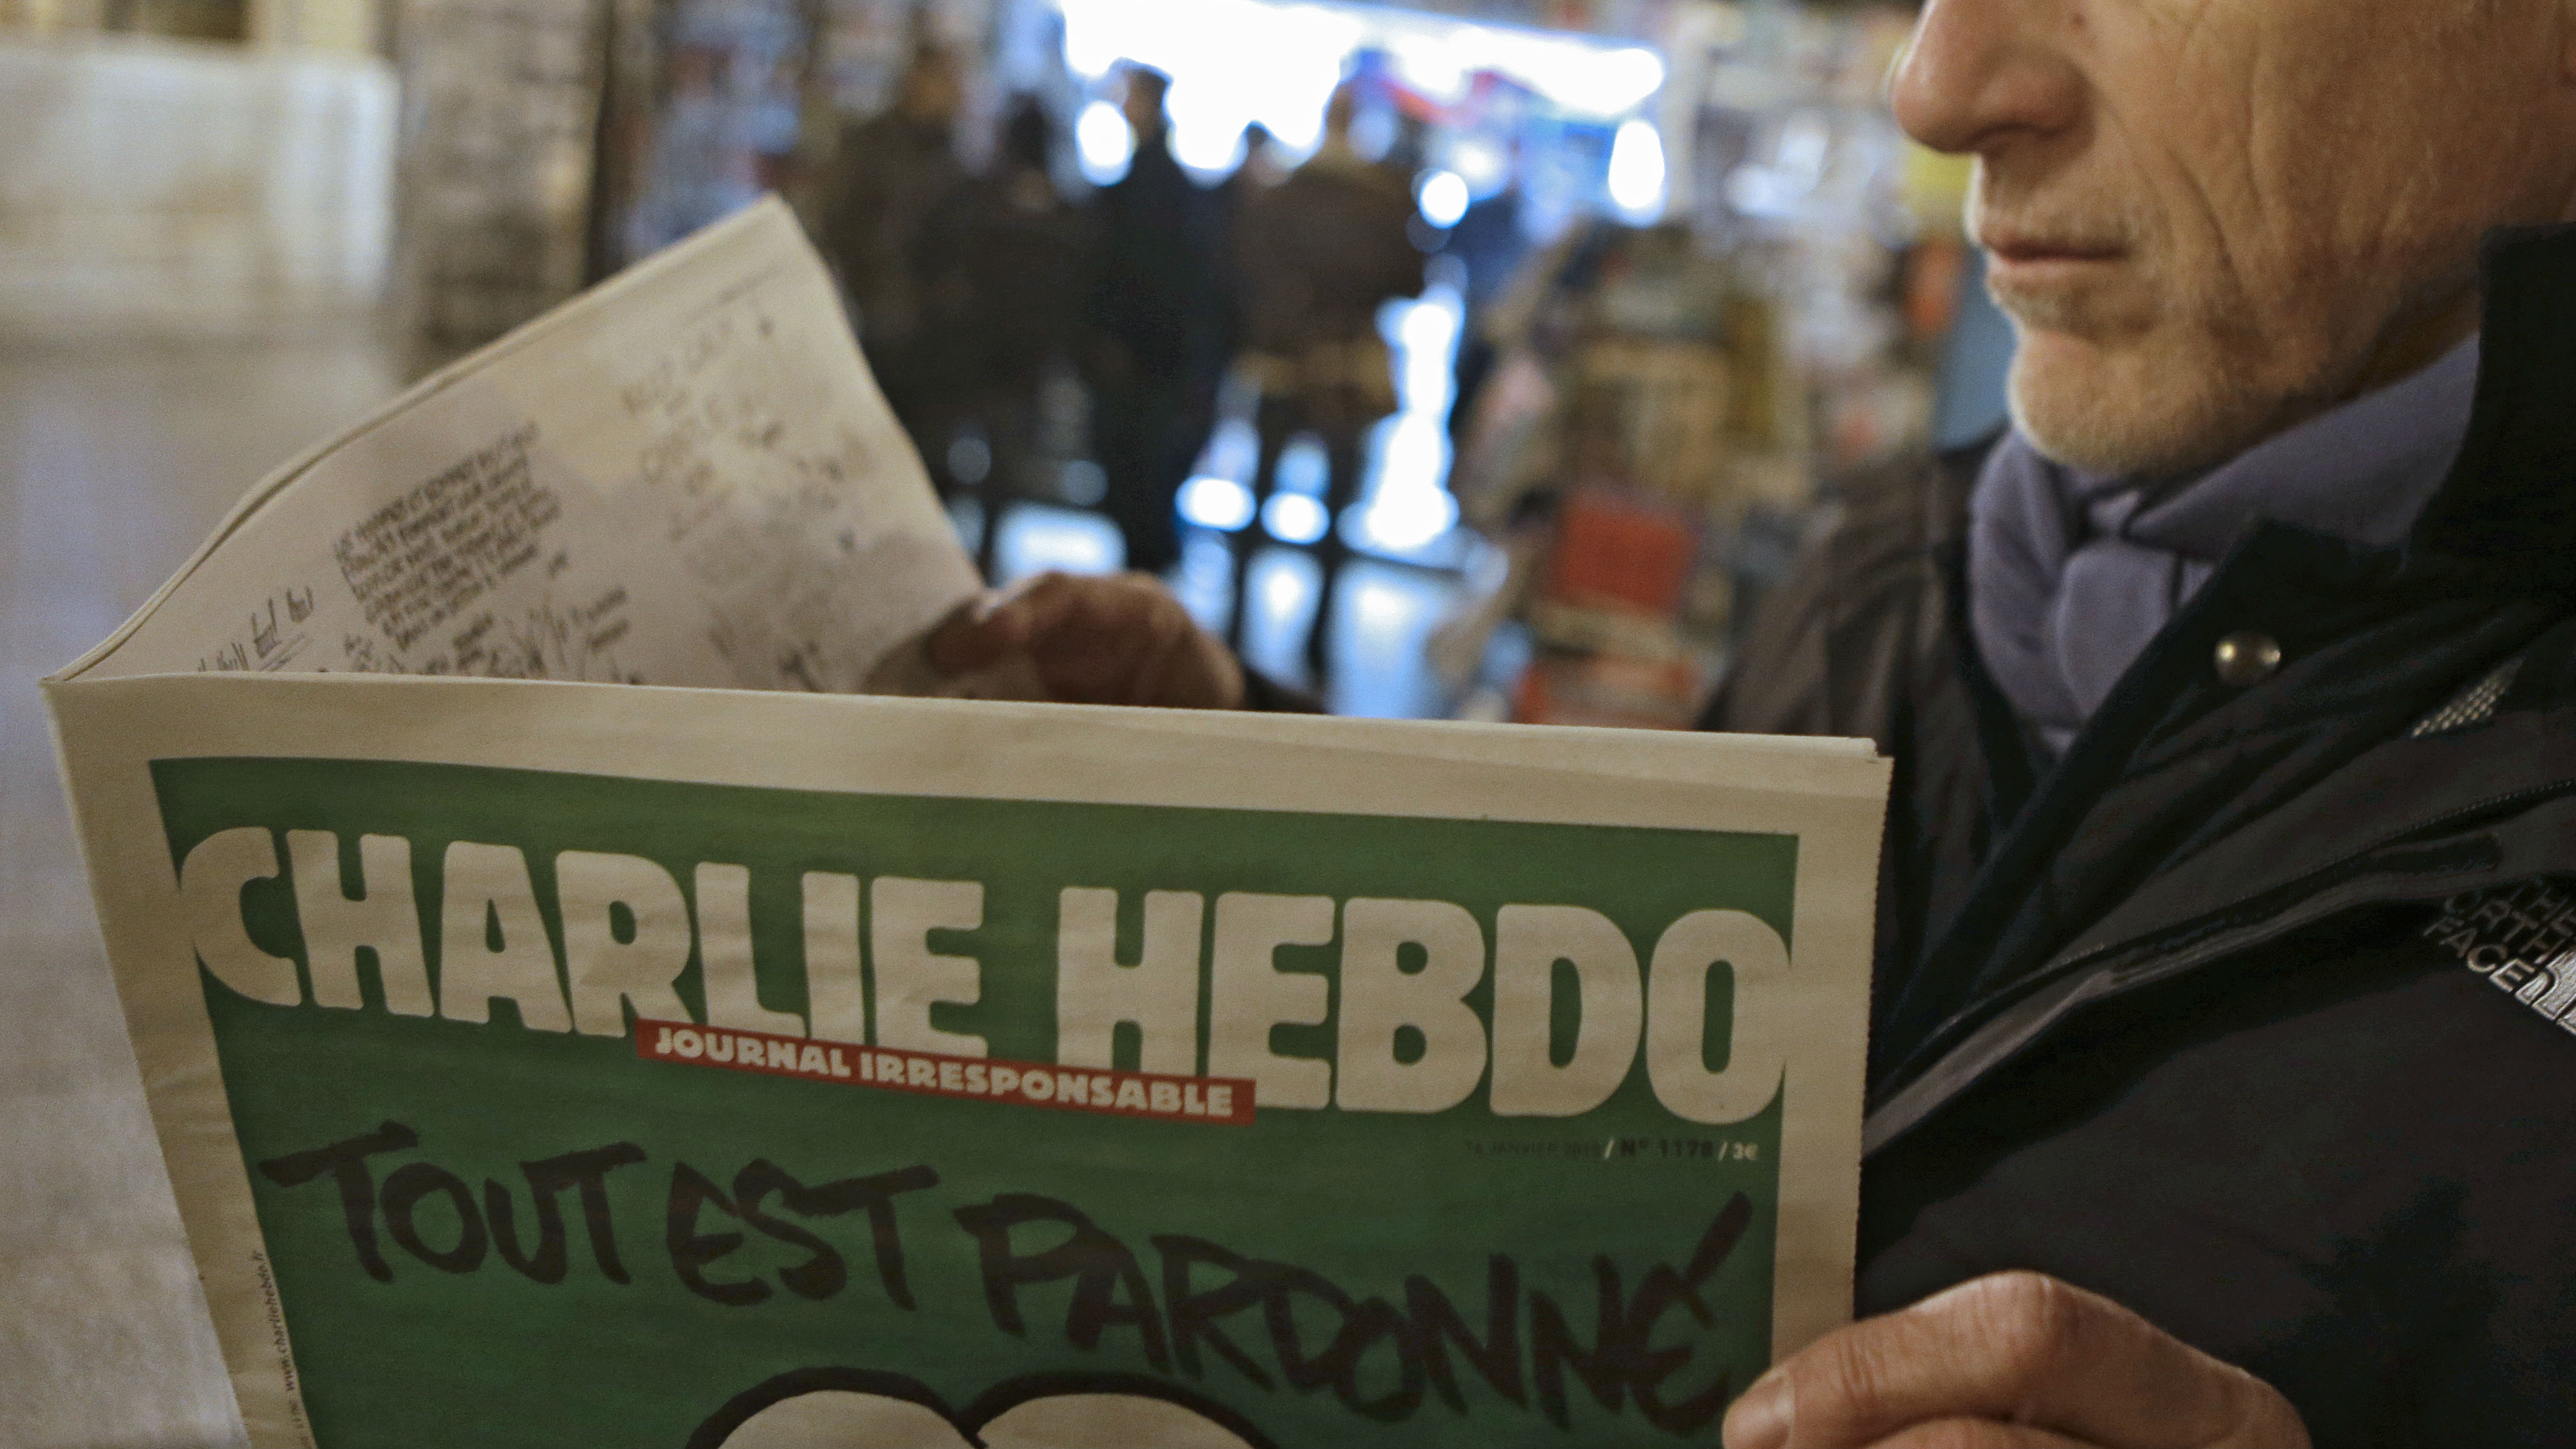 """Jean Paul Bierlein reads the latest issue of Charlie Hebdo outside a newsstand in Nice, southeastern France, Wednesday, Jan. 14, 2015. In an emotional act of defiance, Charlie Hebdo resurrected its irreverent and often provocative newspaper, featuring a caricature of the Prophet Muhammad on the cover that drew immediate criticism and threats of more violence. The black letters on the front page read: """"All is forgiven."""" (AP Photo/Lionel Cironneau)"""